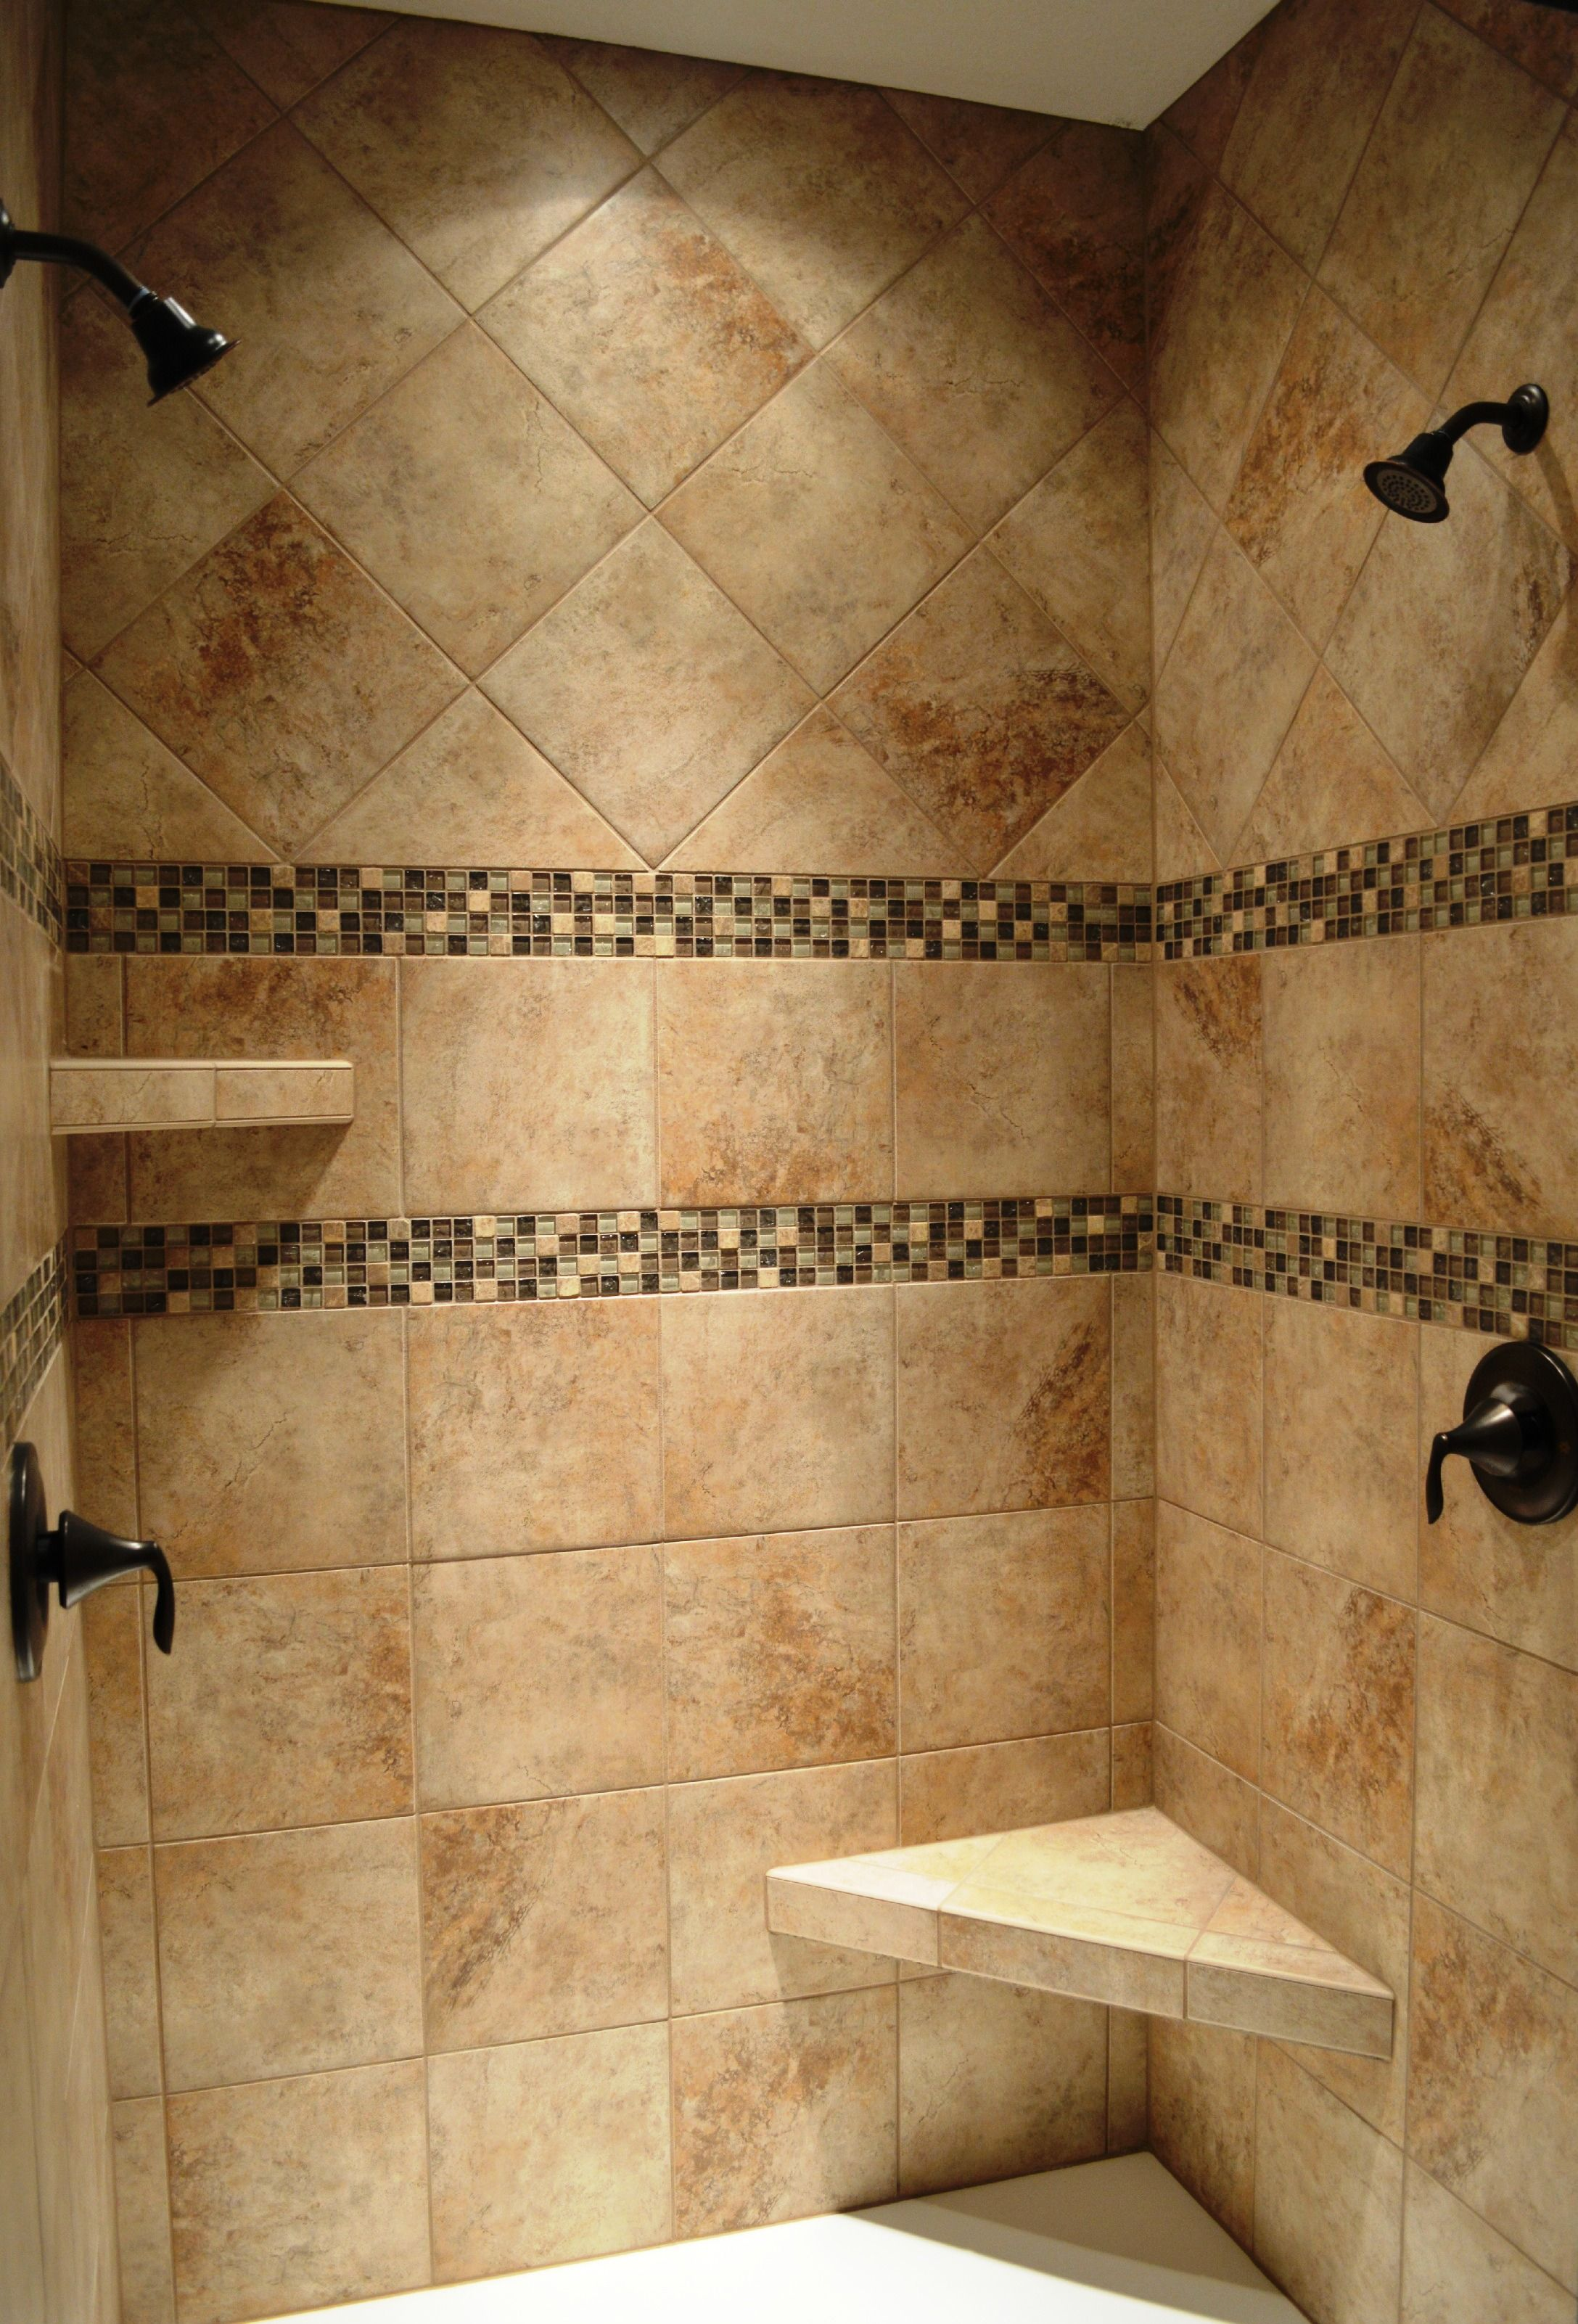 Dual head custom ceramic tile shower with oil rubbed bronze dual head custom ceramic tile shower with oil rubbed bronze fixtures dailygadgetfo Choice Image